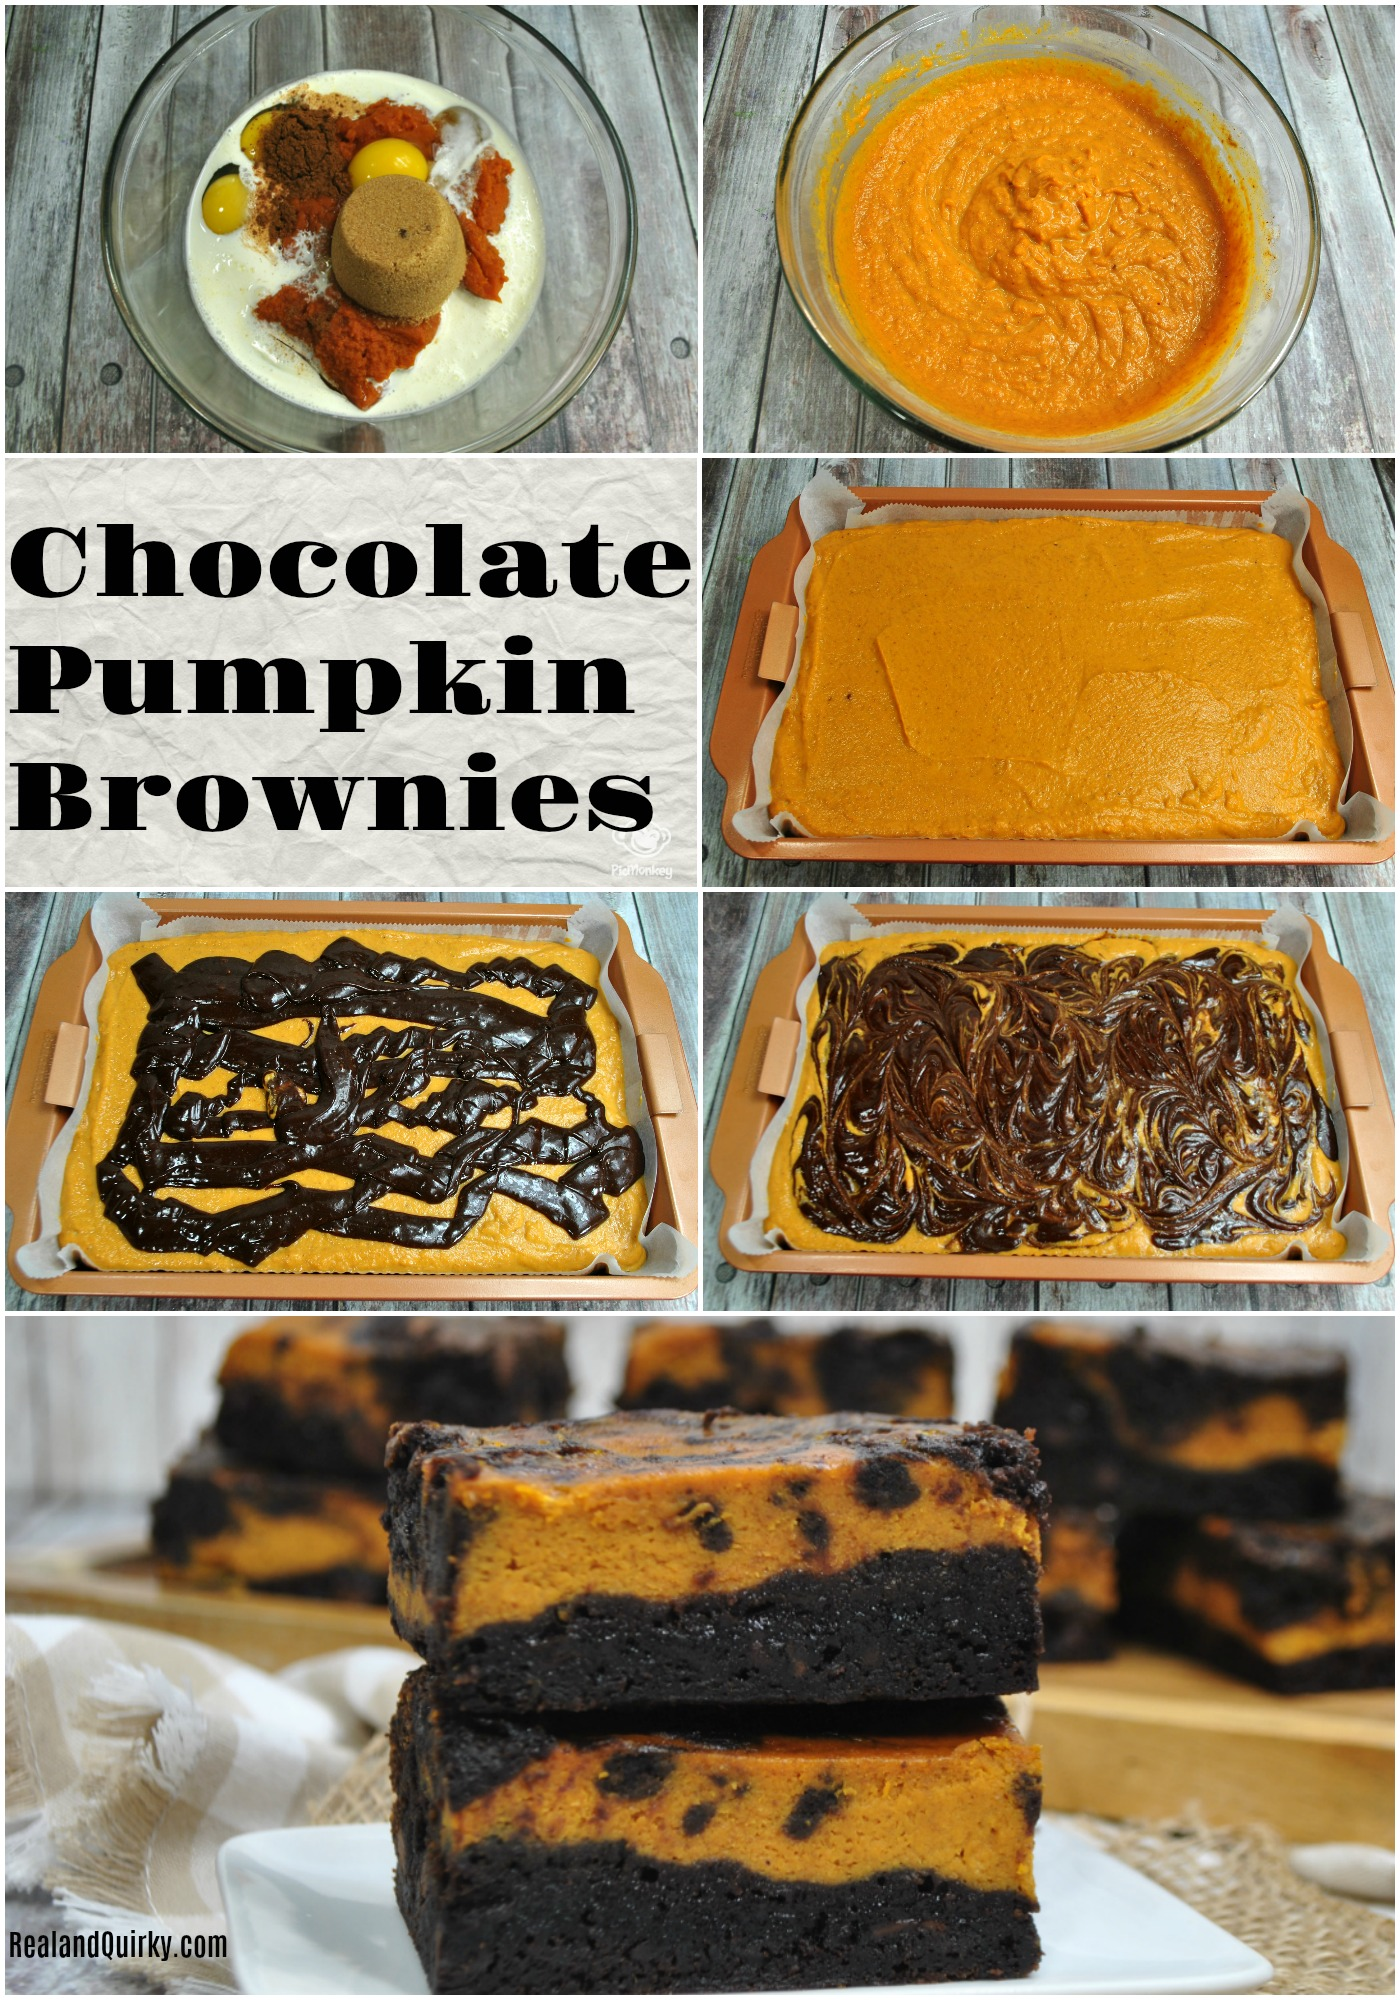 Chocolate Pumpkin Brownies Recipe